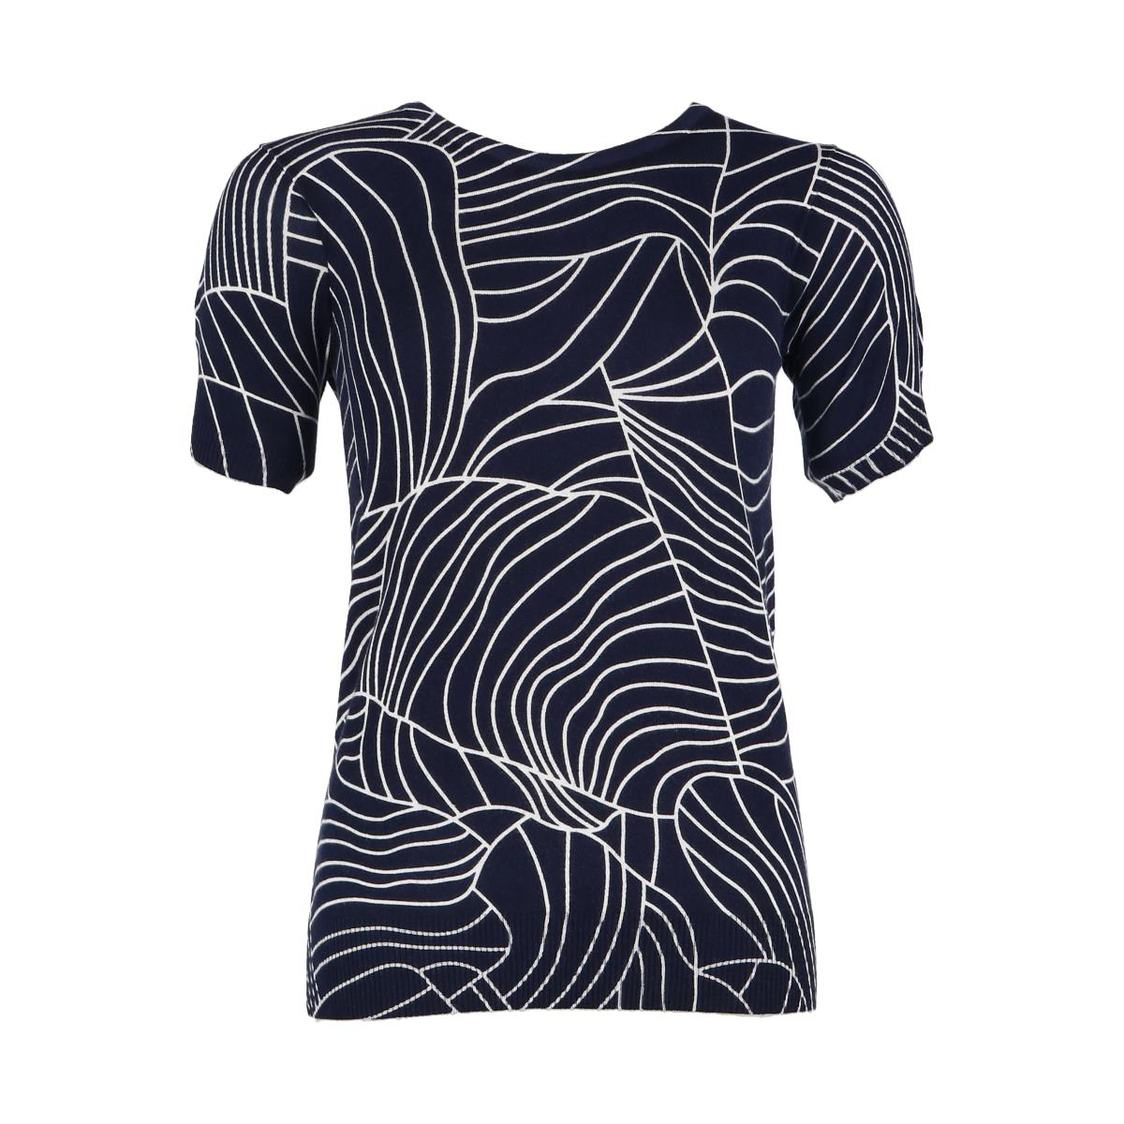 Navy Printed Short Sleeve Knitted Top